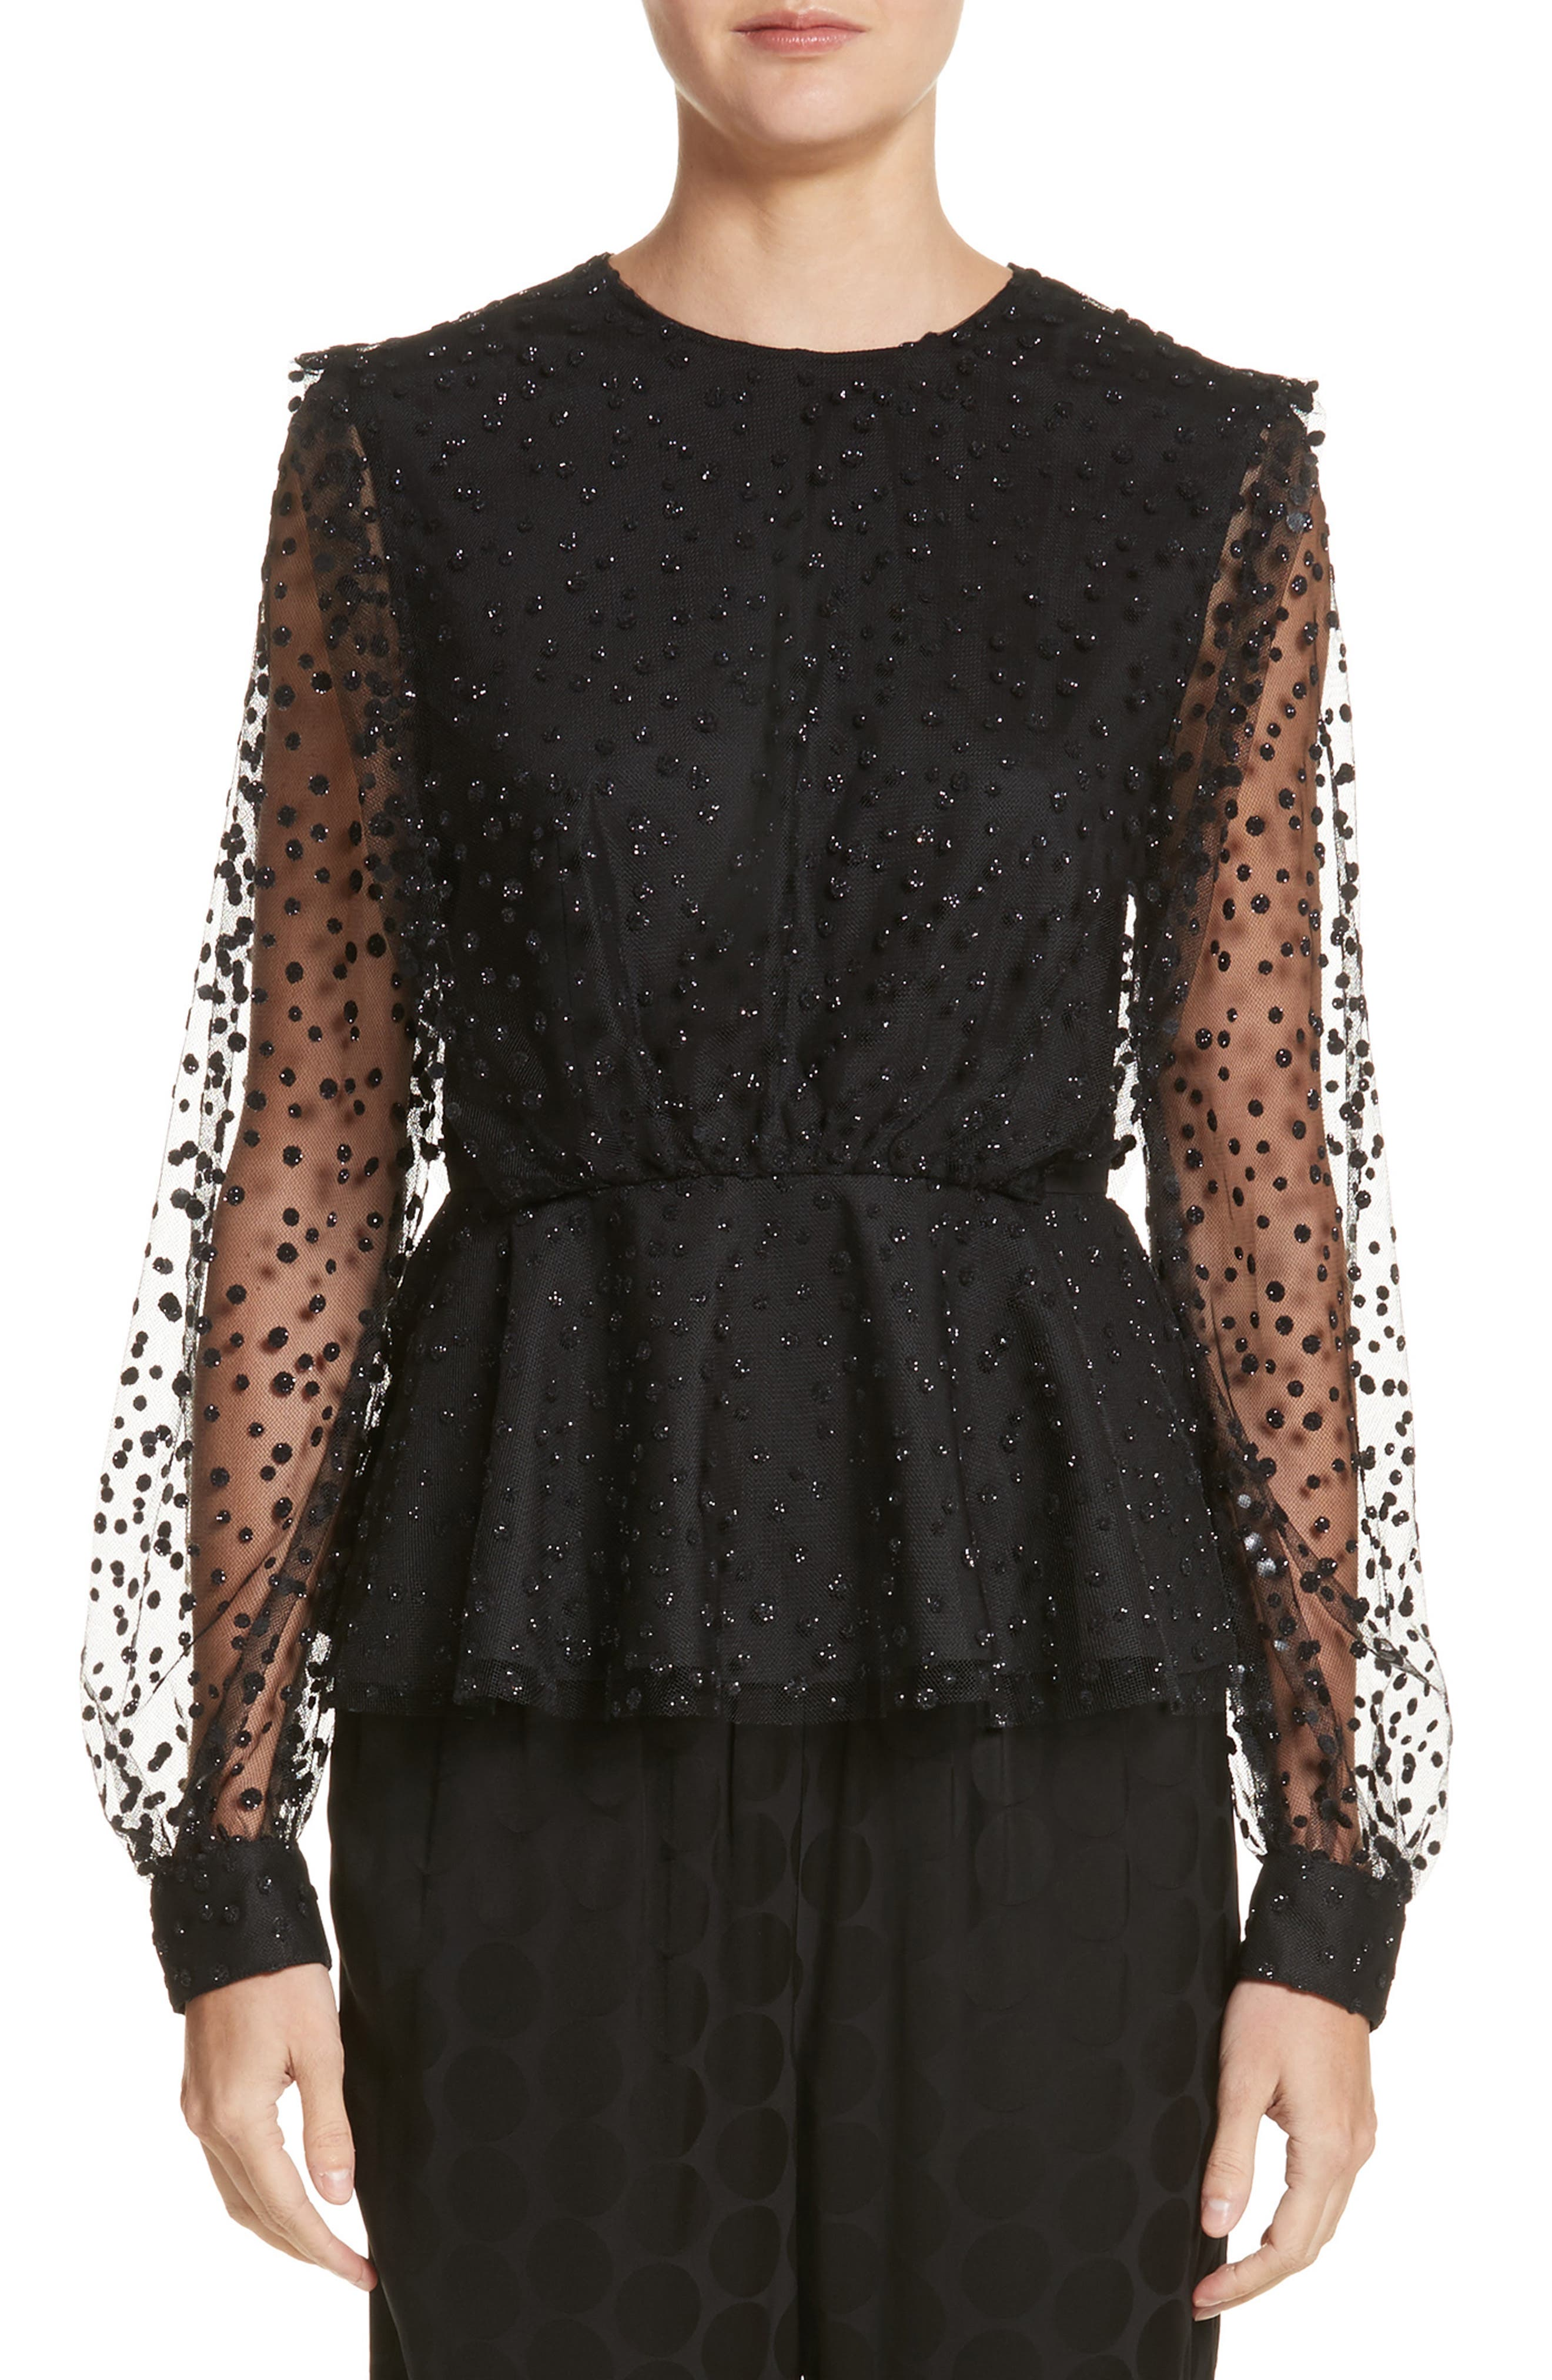 Co Sparkle Dot Tulle Top